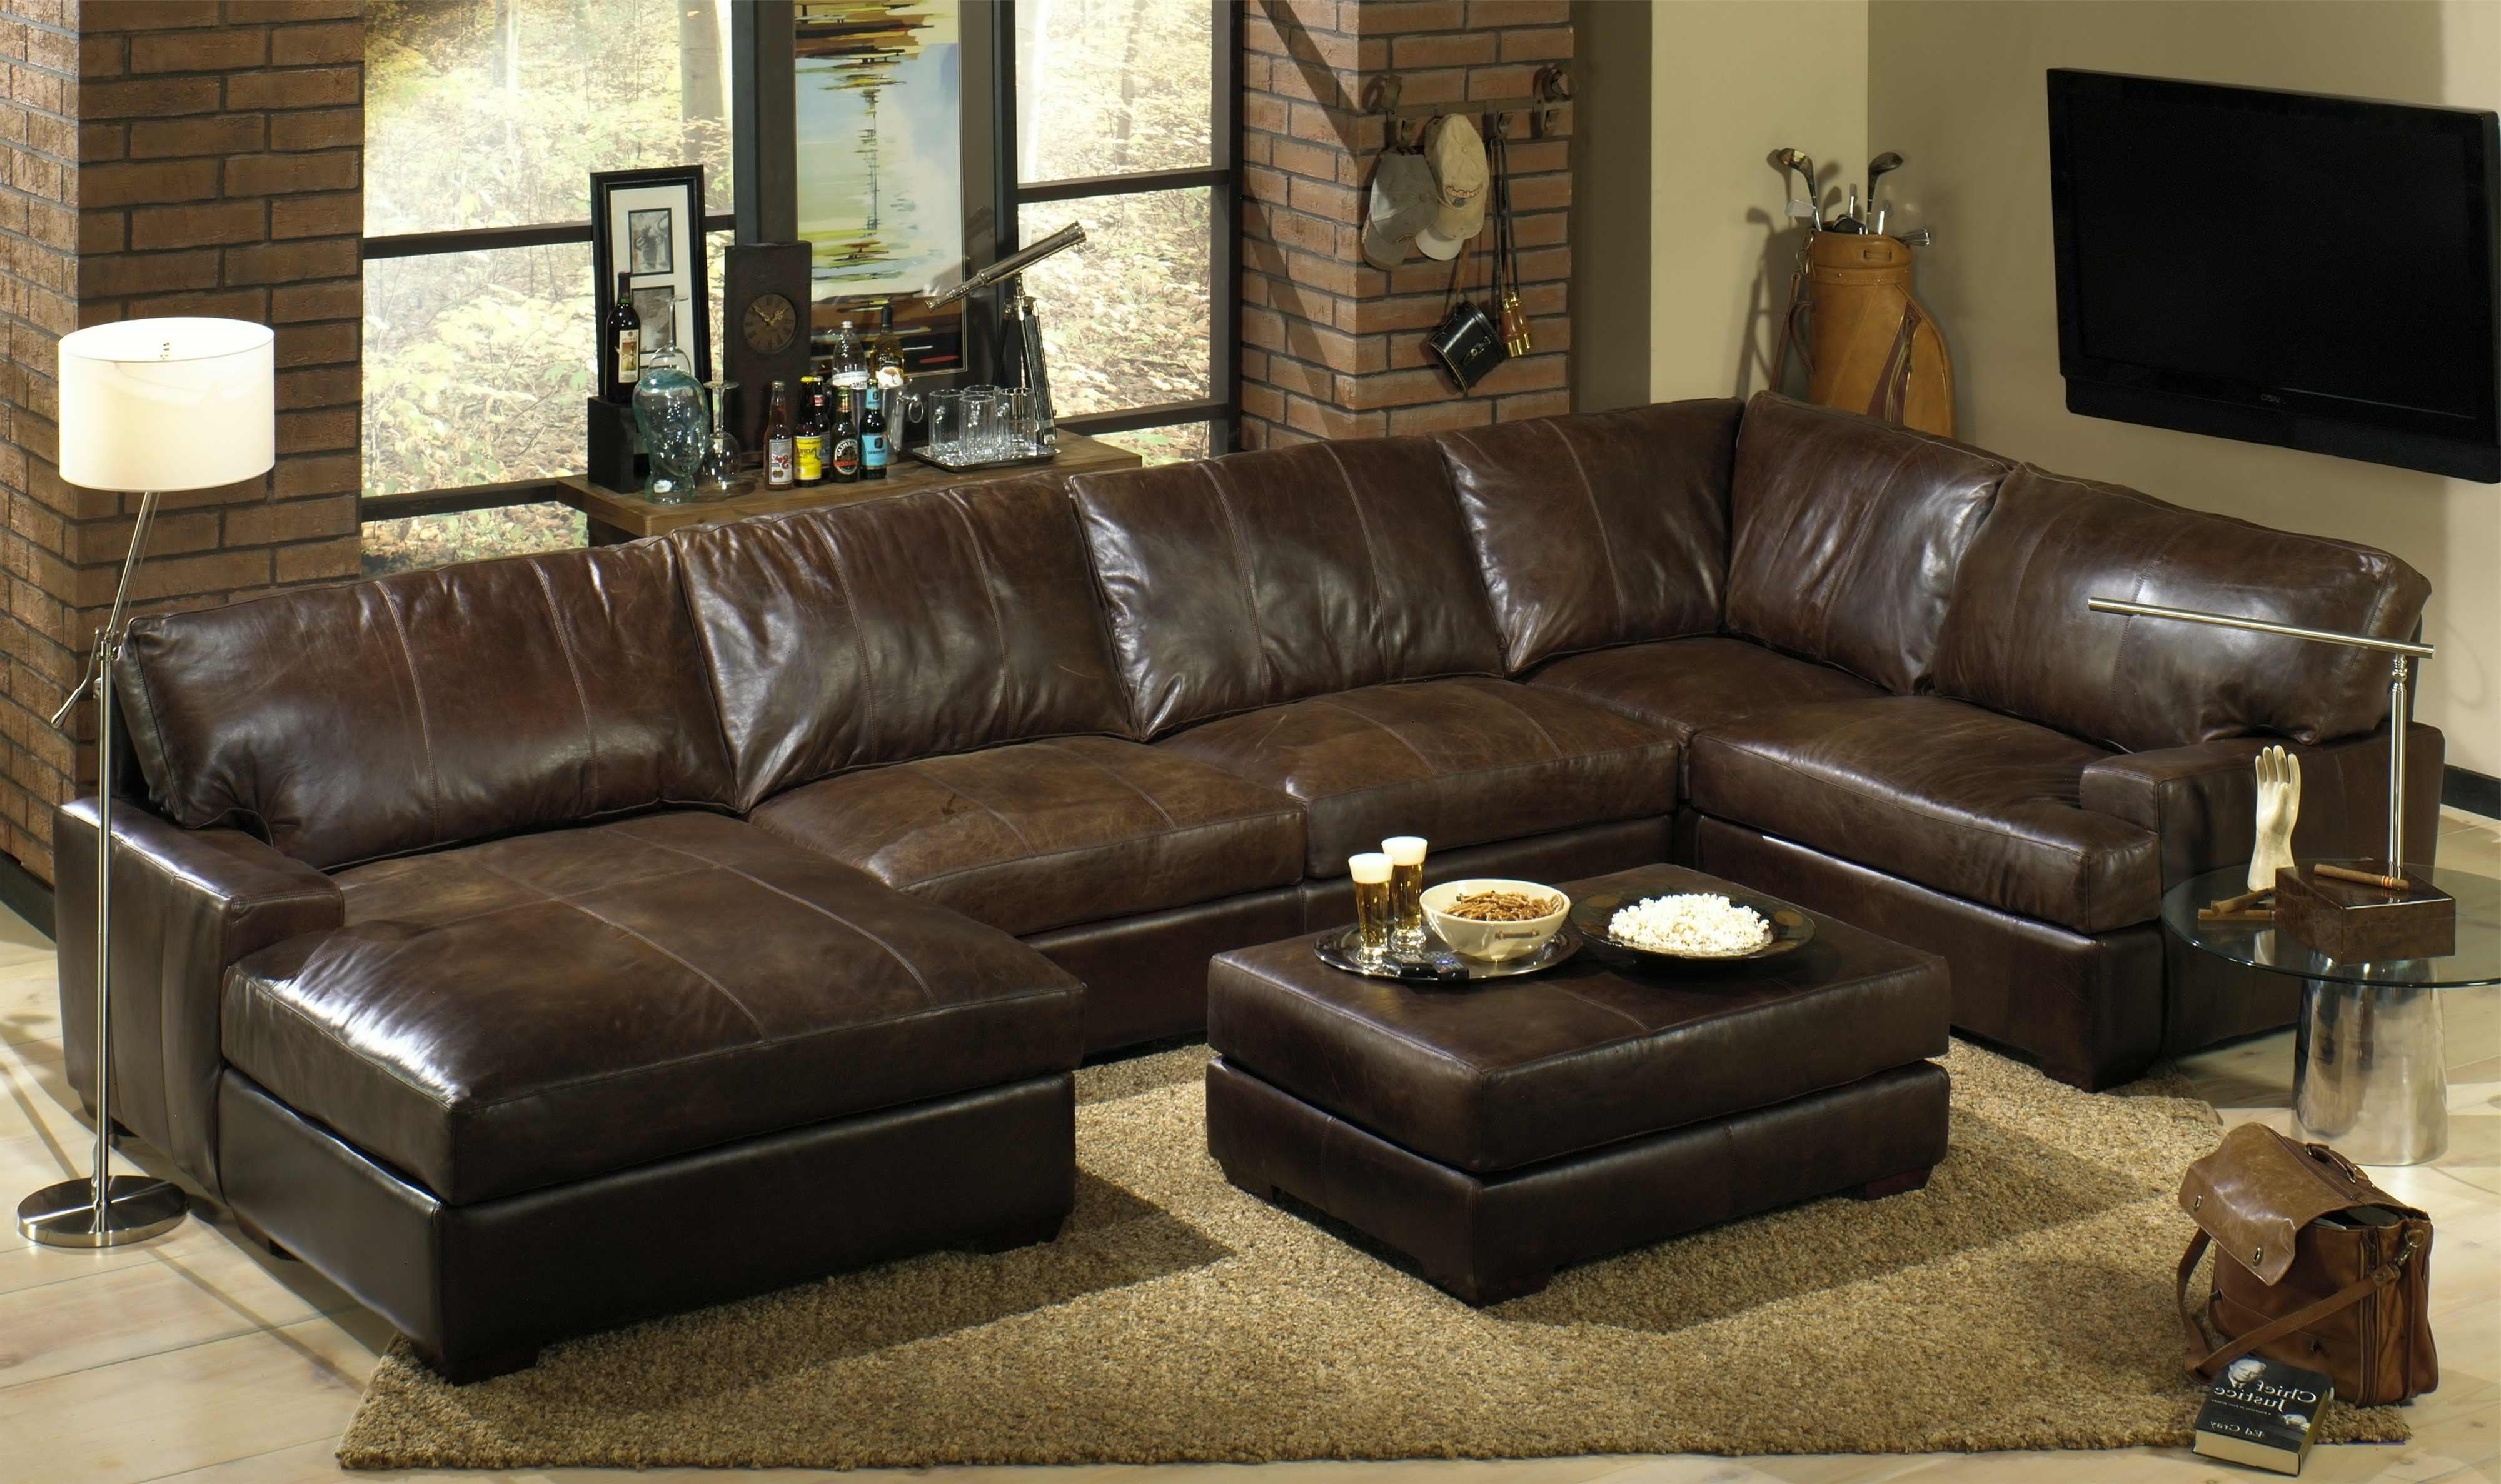 Leather Loveseat Recliner Leather Couches Clearance Leather Corner Within 2018 Clearance Sectional Sofas (View 11 of 20)